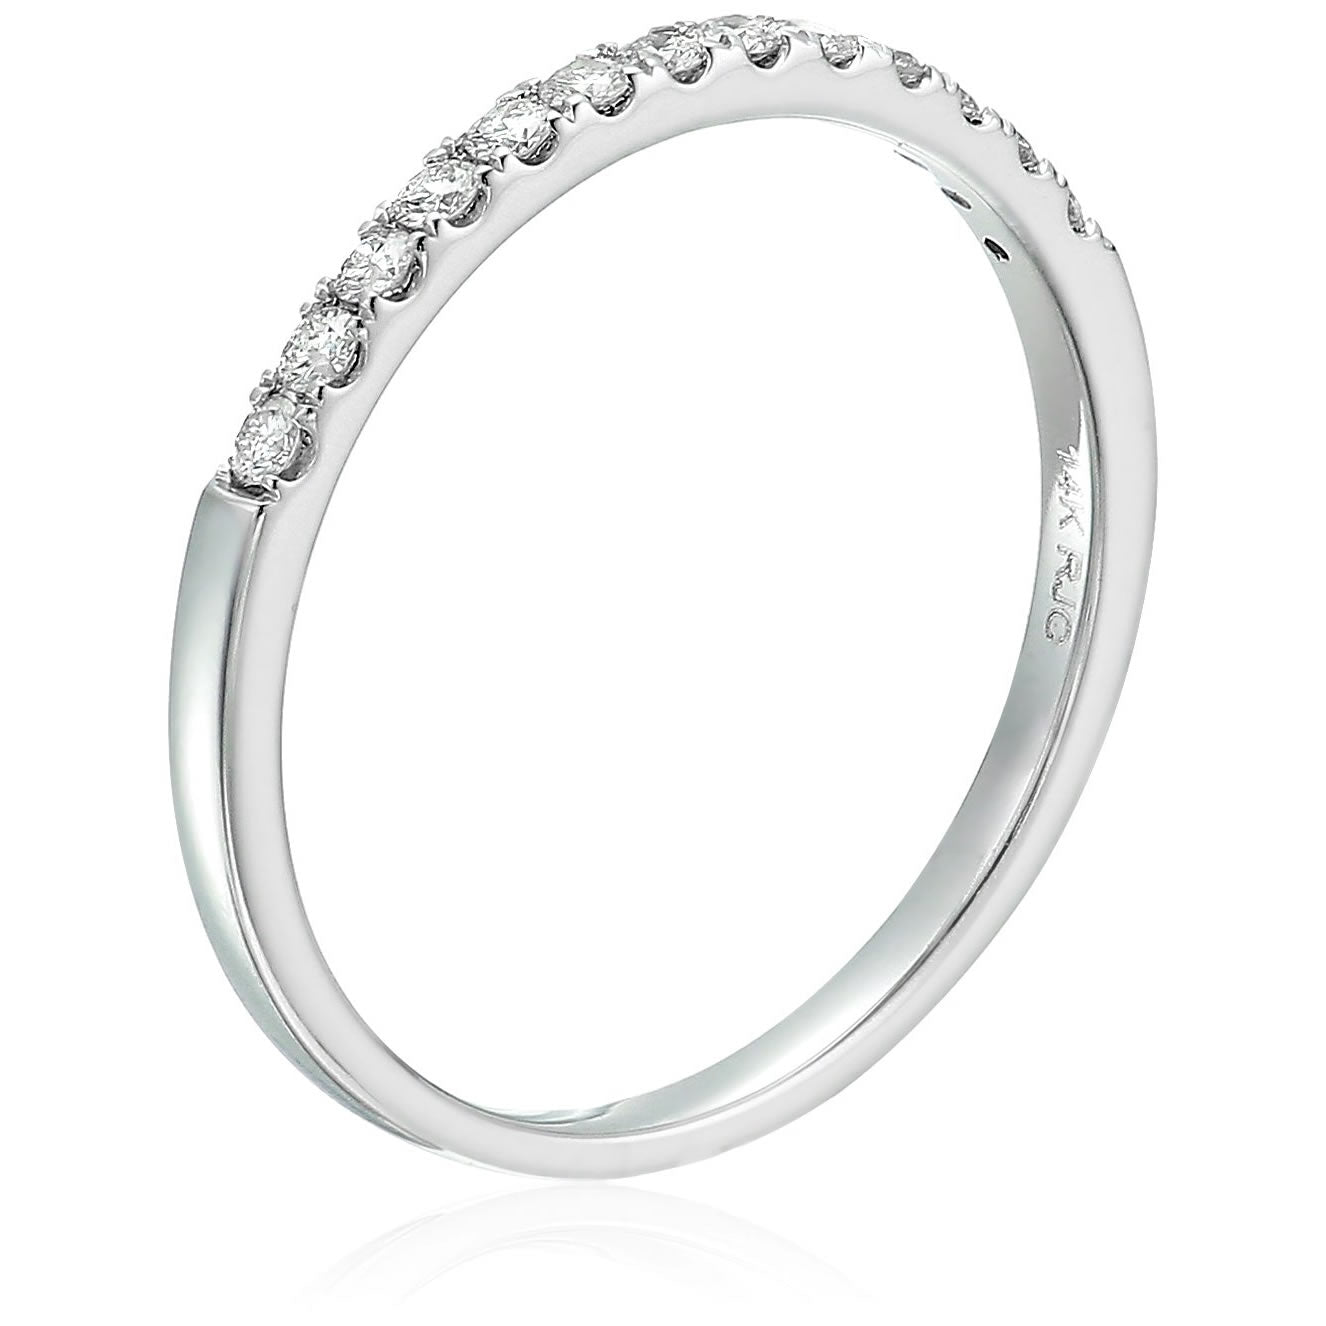 Vir Jewels 1//5 cttw Pave Diamond Wedding Band in 14k White or Yellow Gold